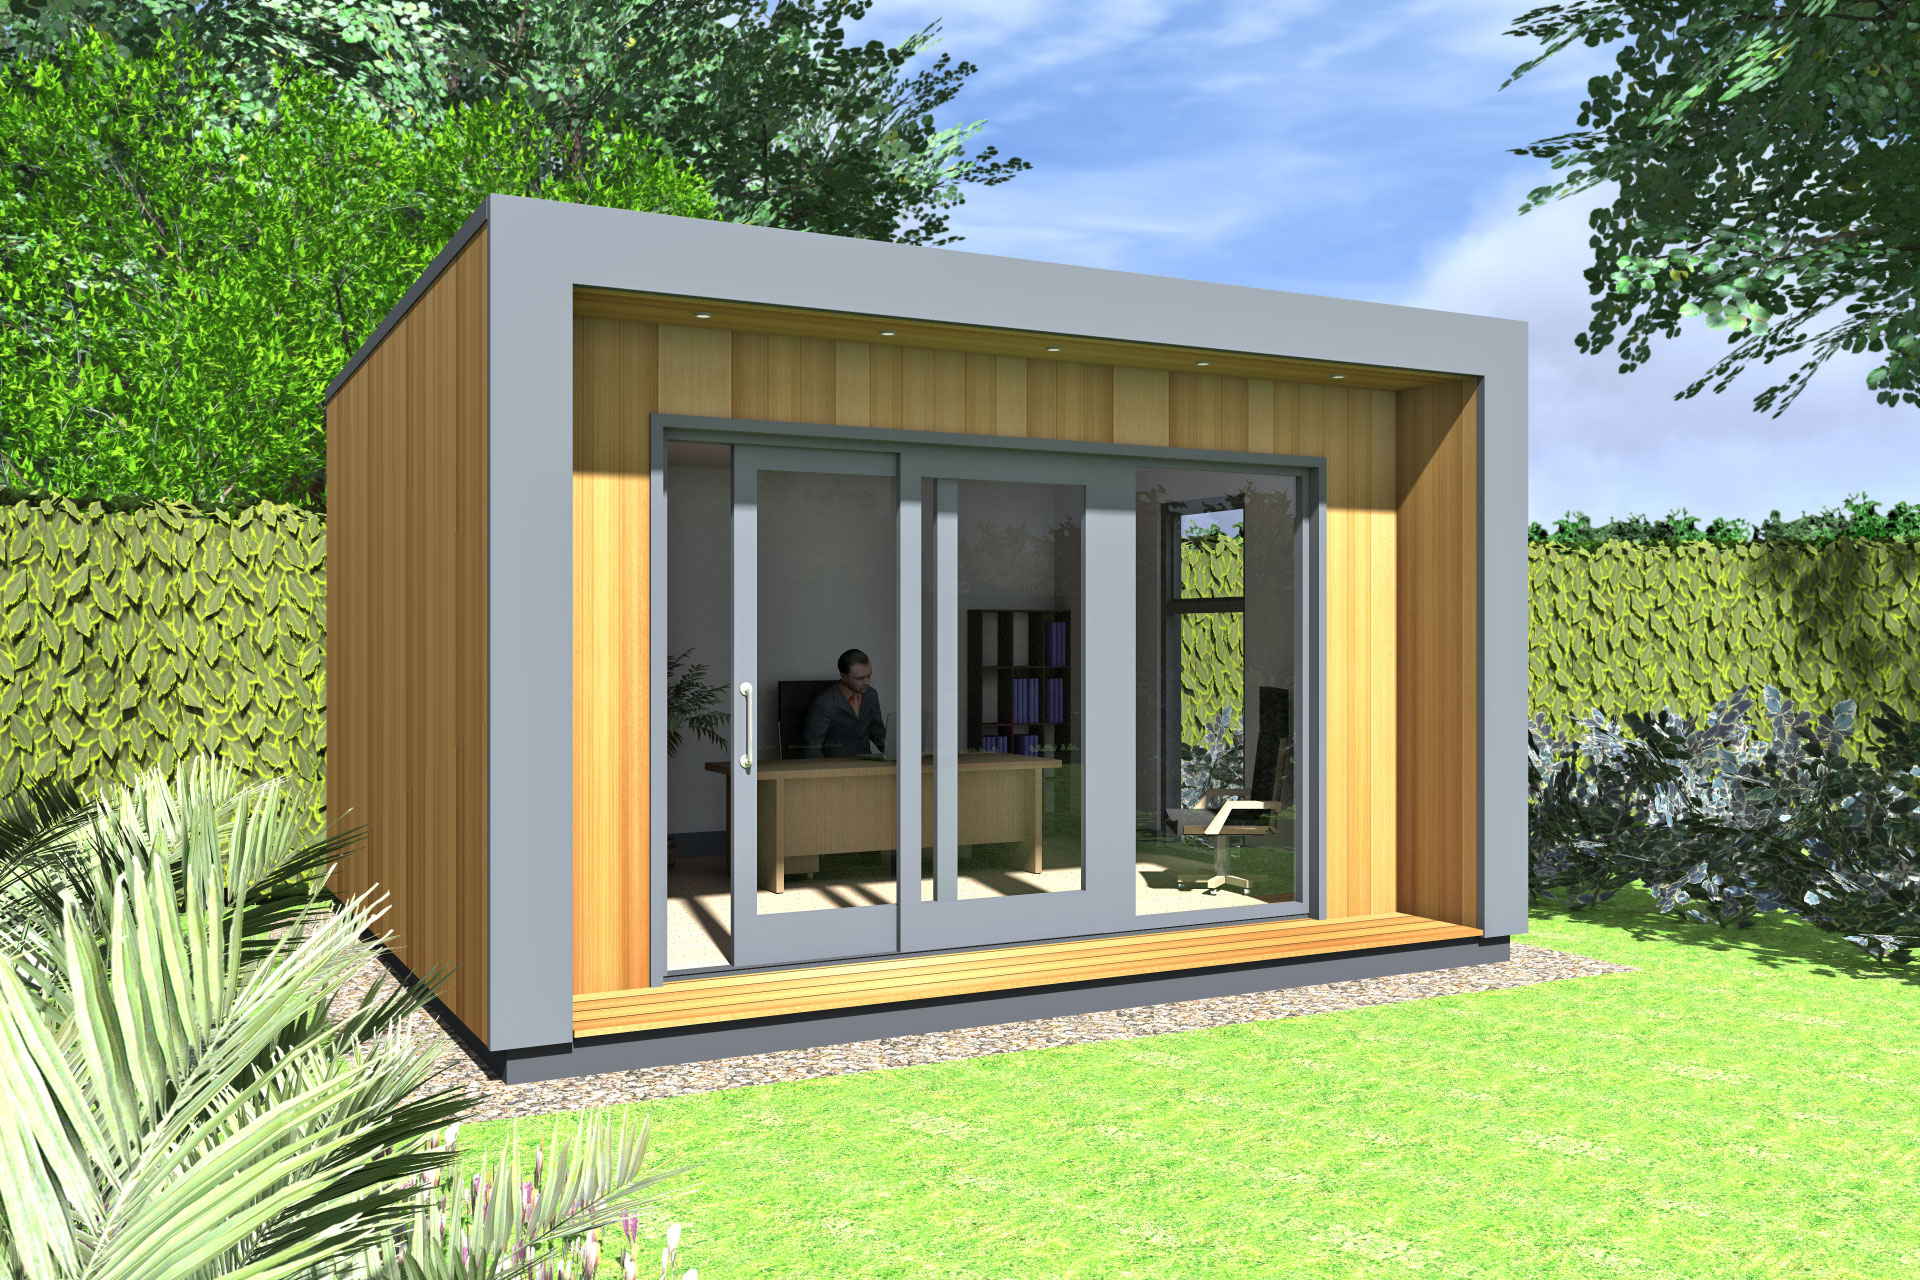 Office pods ideas gallery garden office ideas gallery for Designs for garden rooms